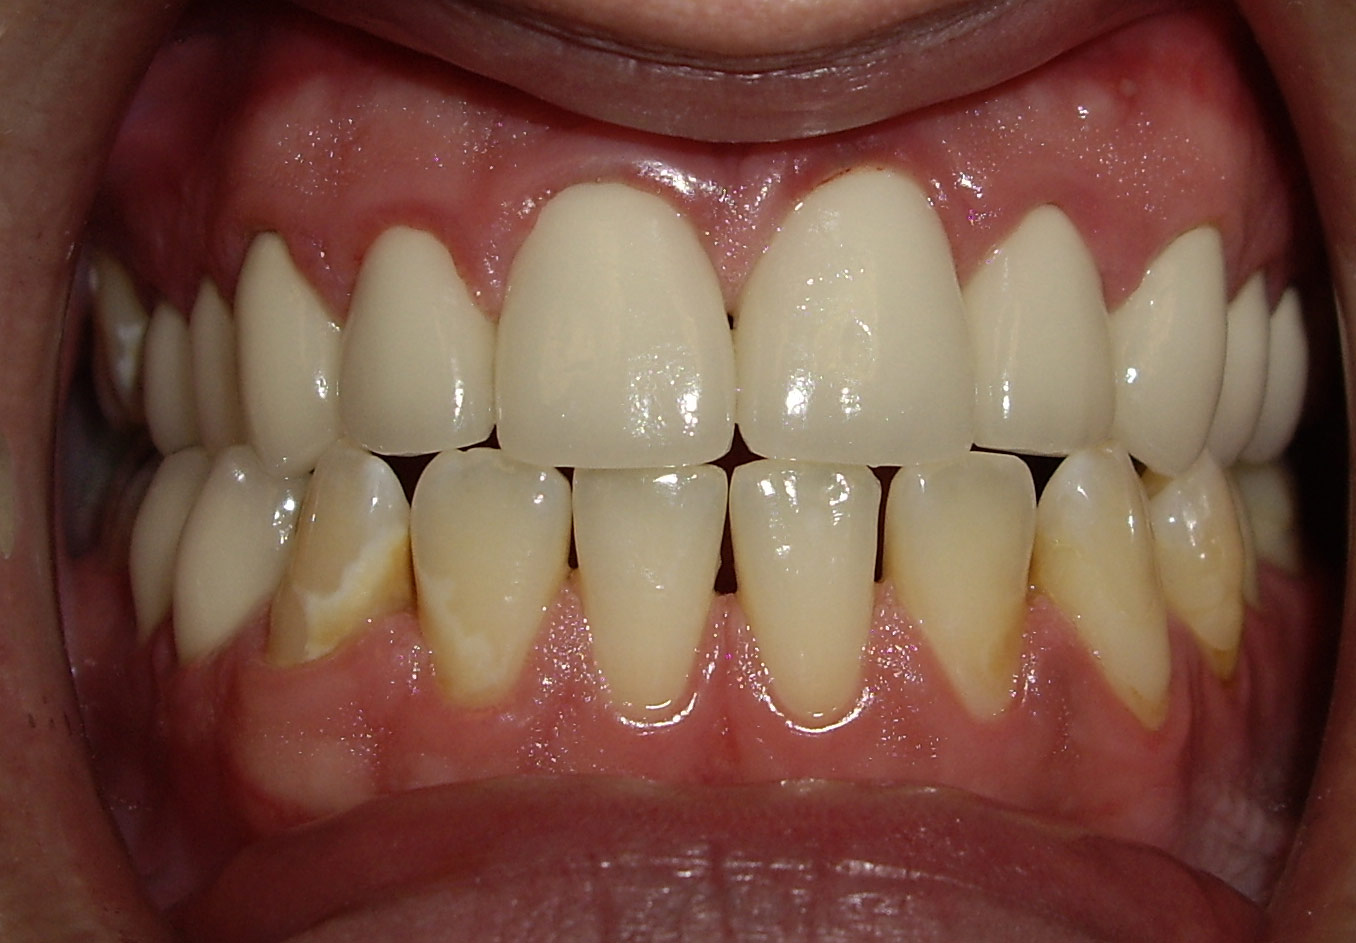 A  fter  The delivery of the crowns followed by dietetic counseling and a 3 month periodontal cleaning protocol. This picture was taken two years after the placement of the definitive aesthetic crown restorations, and he remains cavity free.